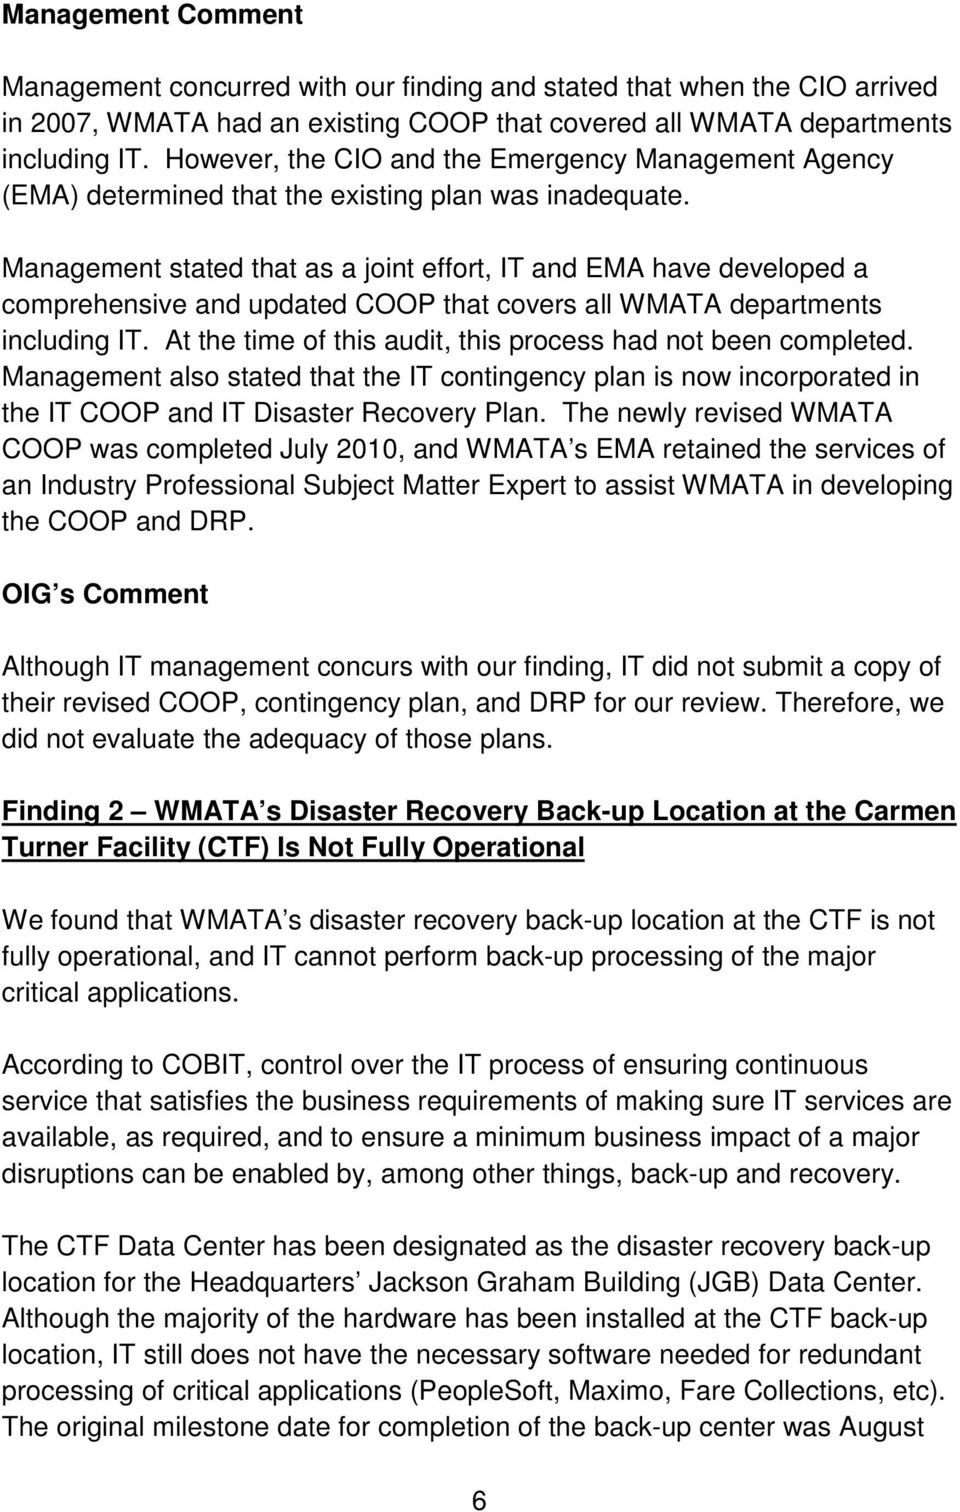 Management stated that as a joint effort, IT and EMA have developed a comprehensive and updated COOP that covers all WMATA departments including IT.